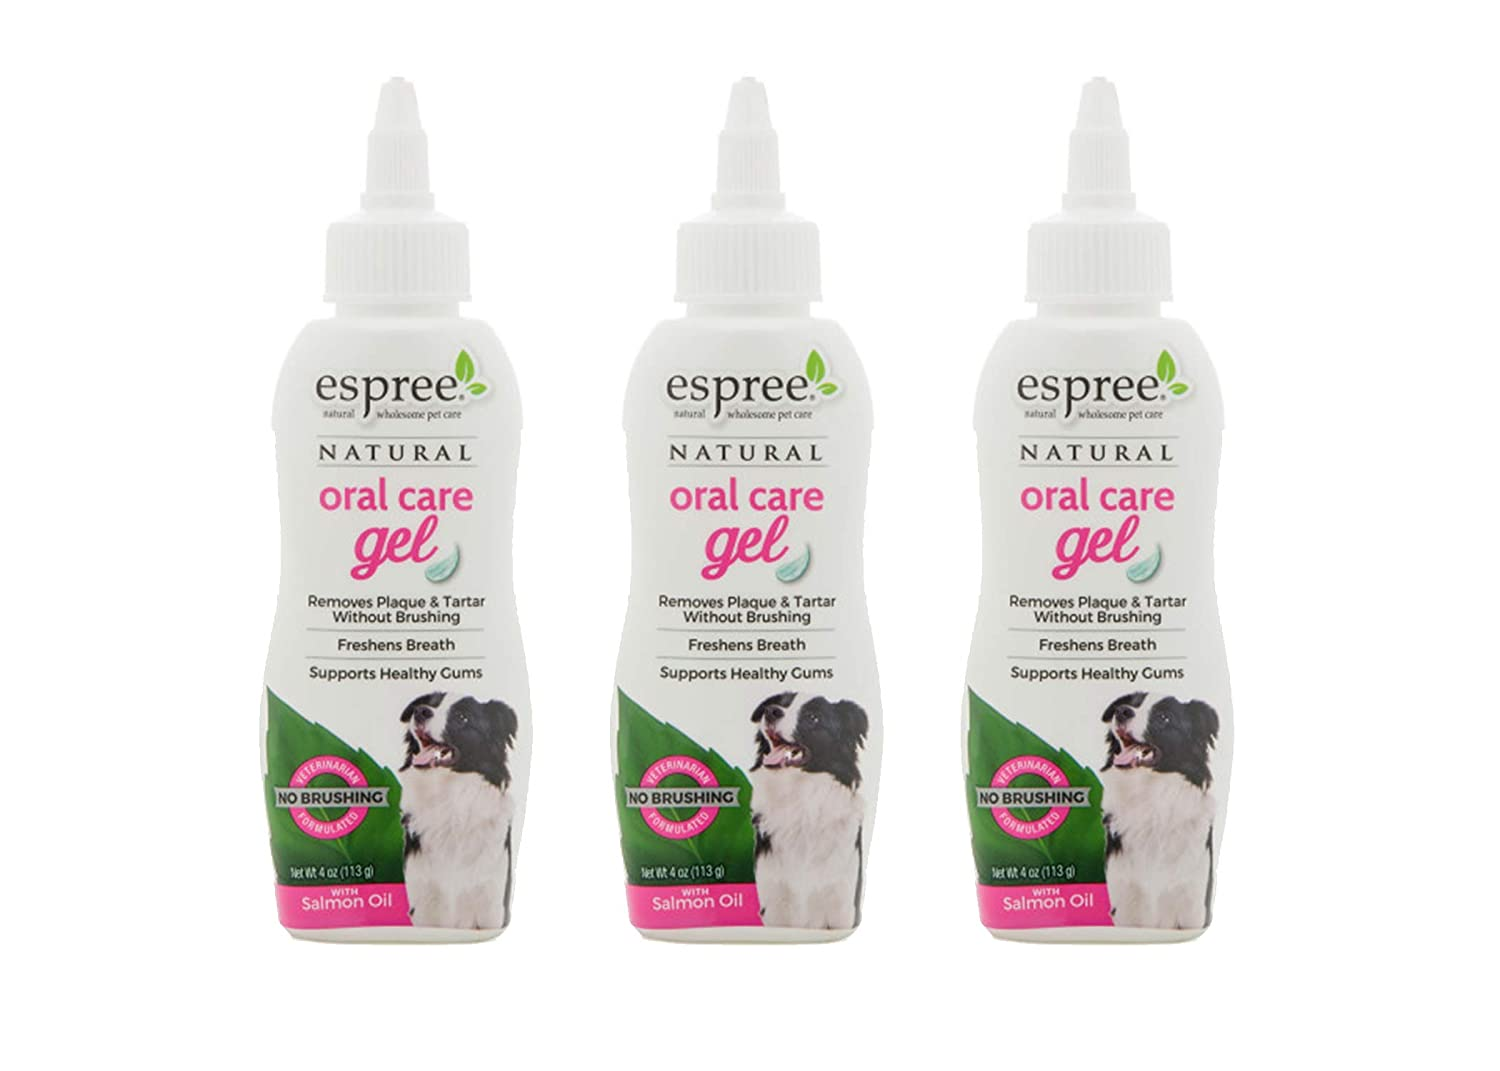 Espree Natural Oral Care Gel for Dogs and Cats